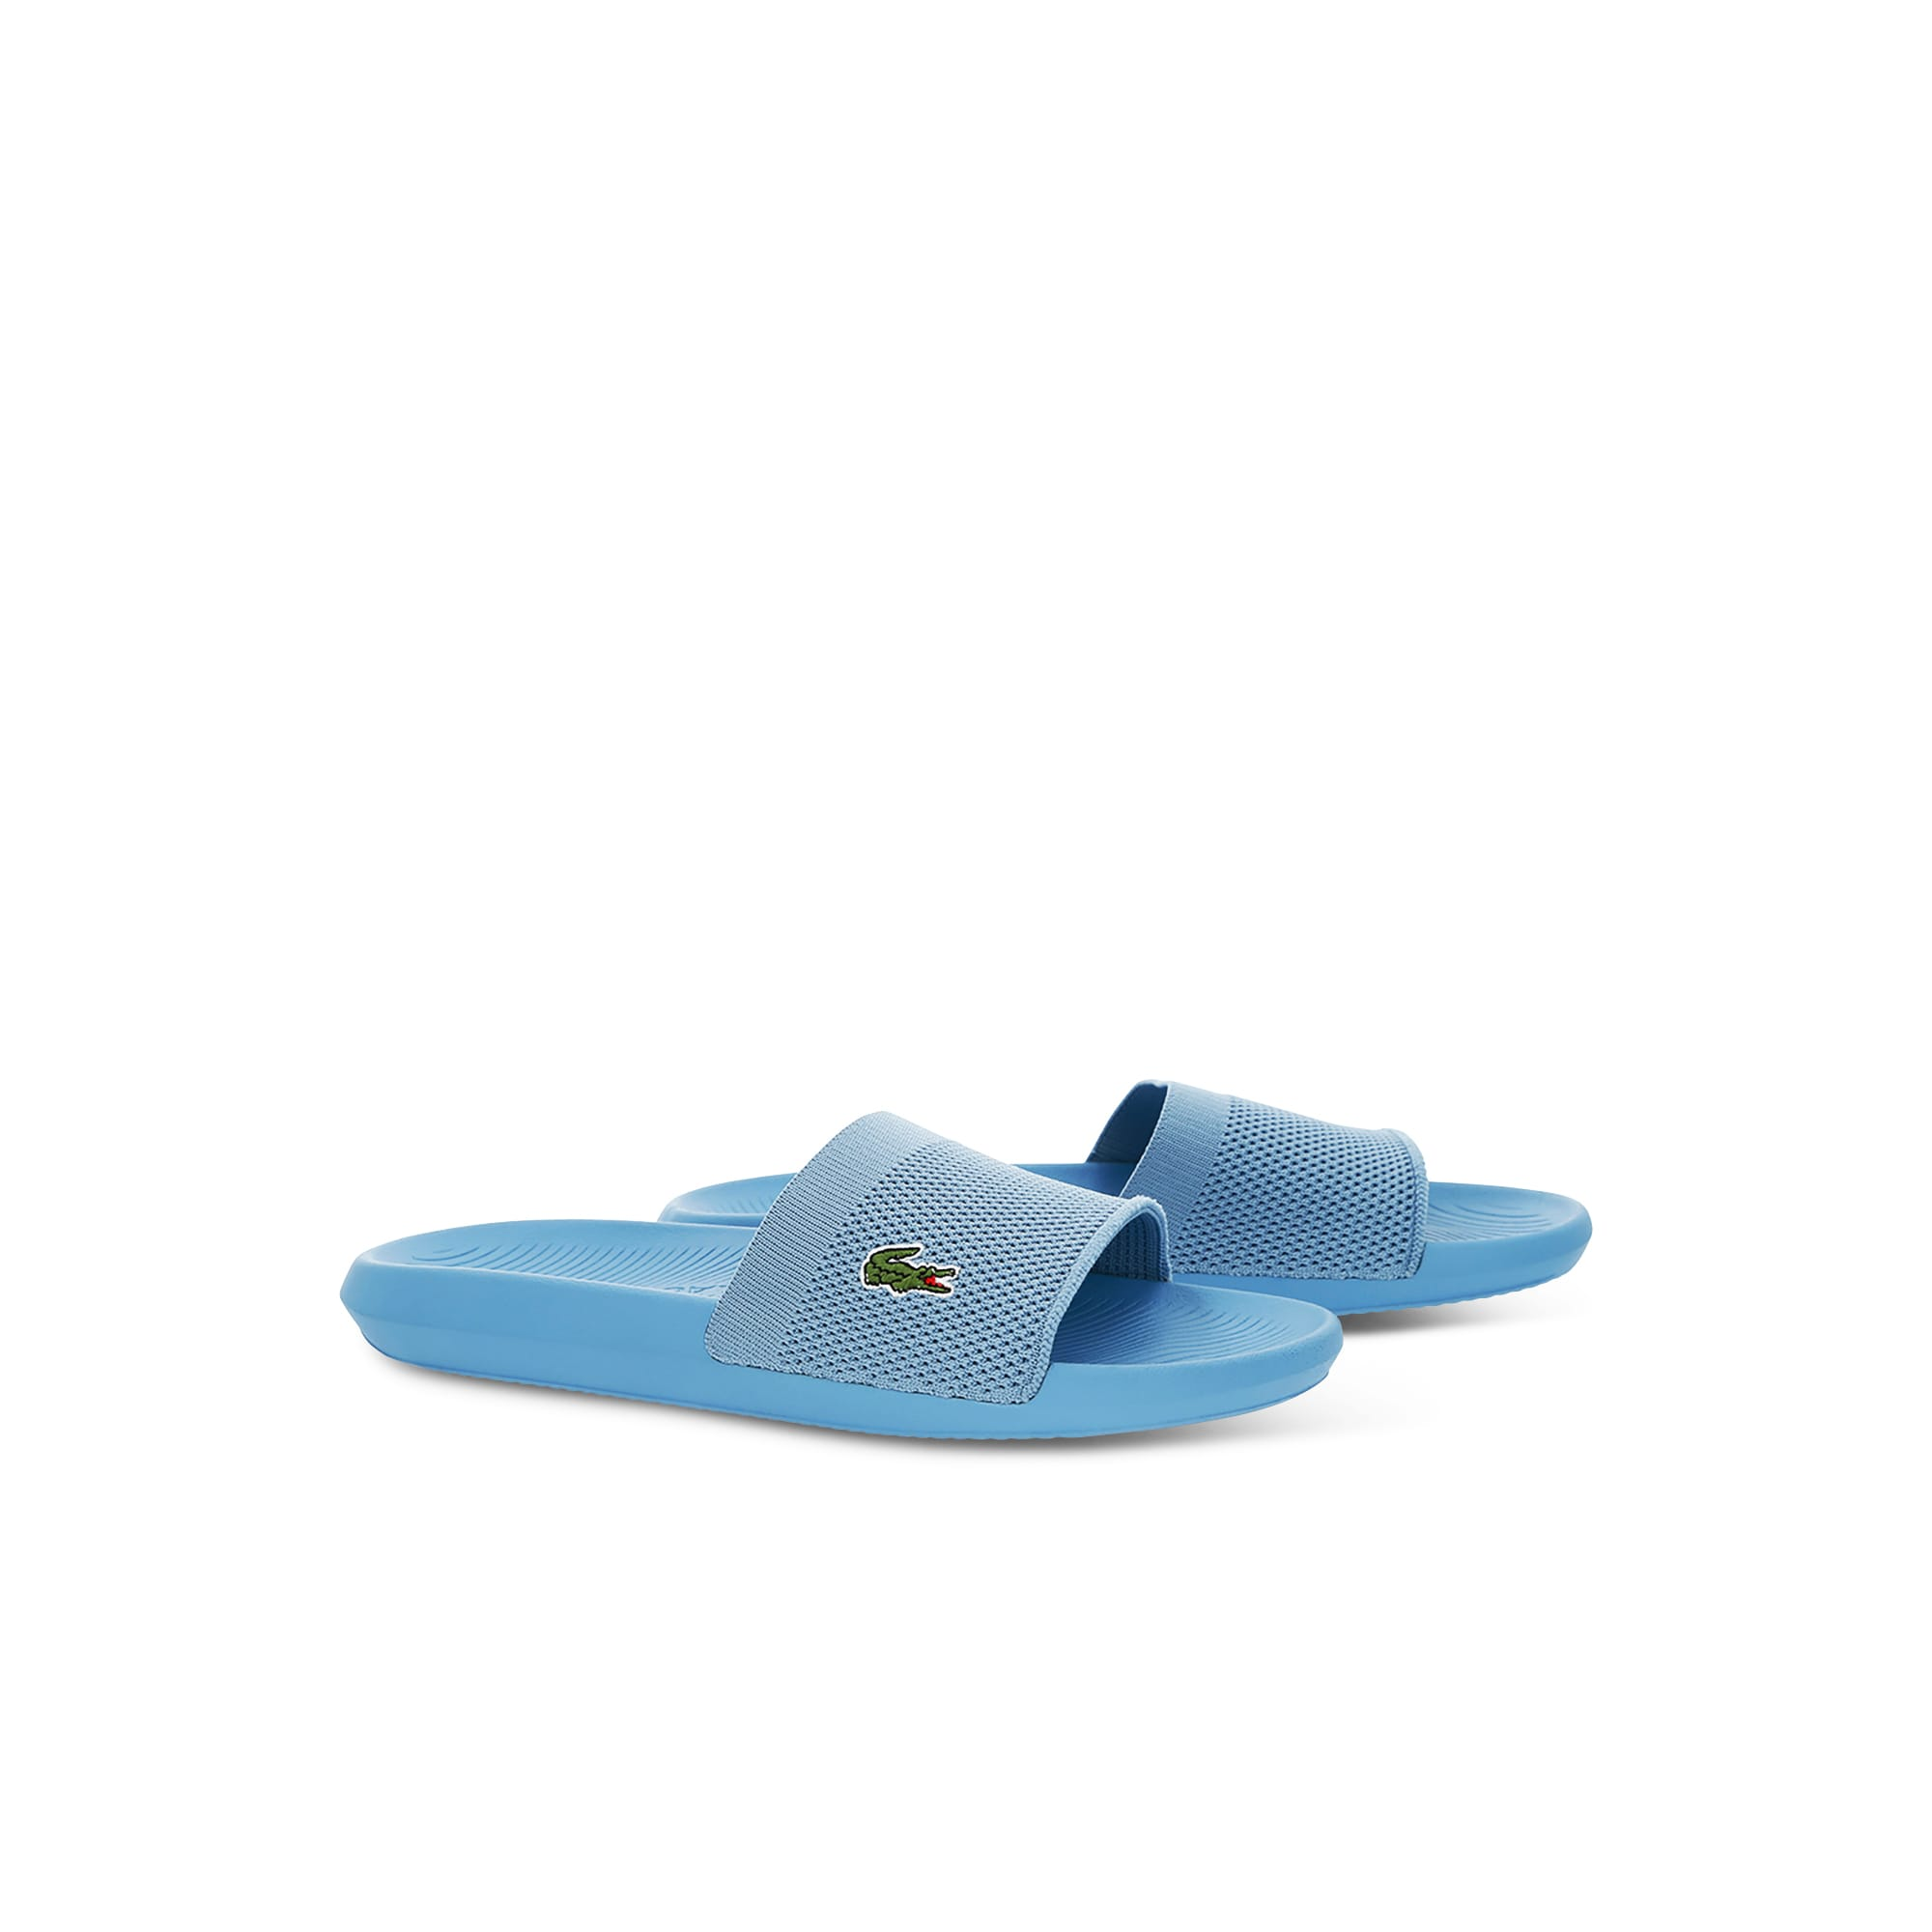 Men's Plain Textile Slides